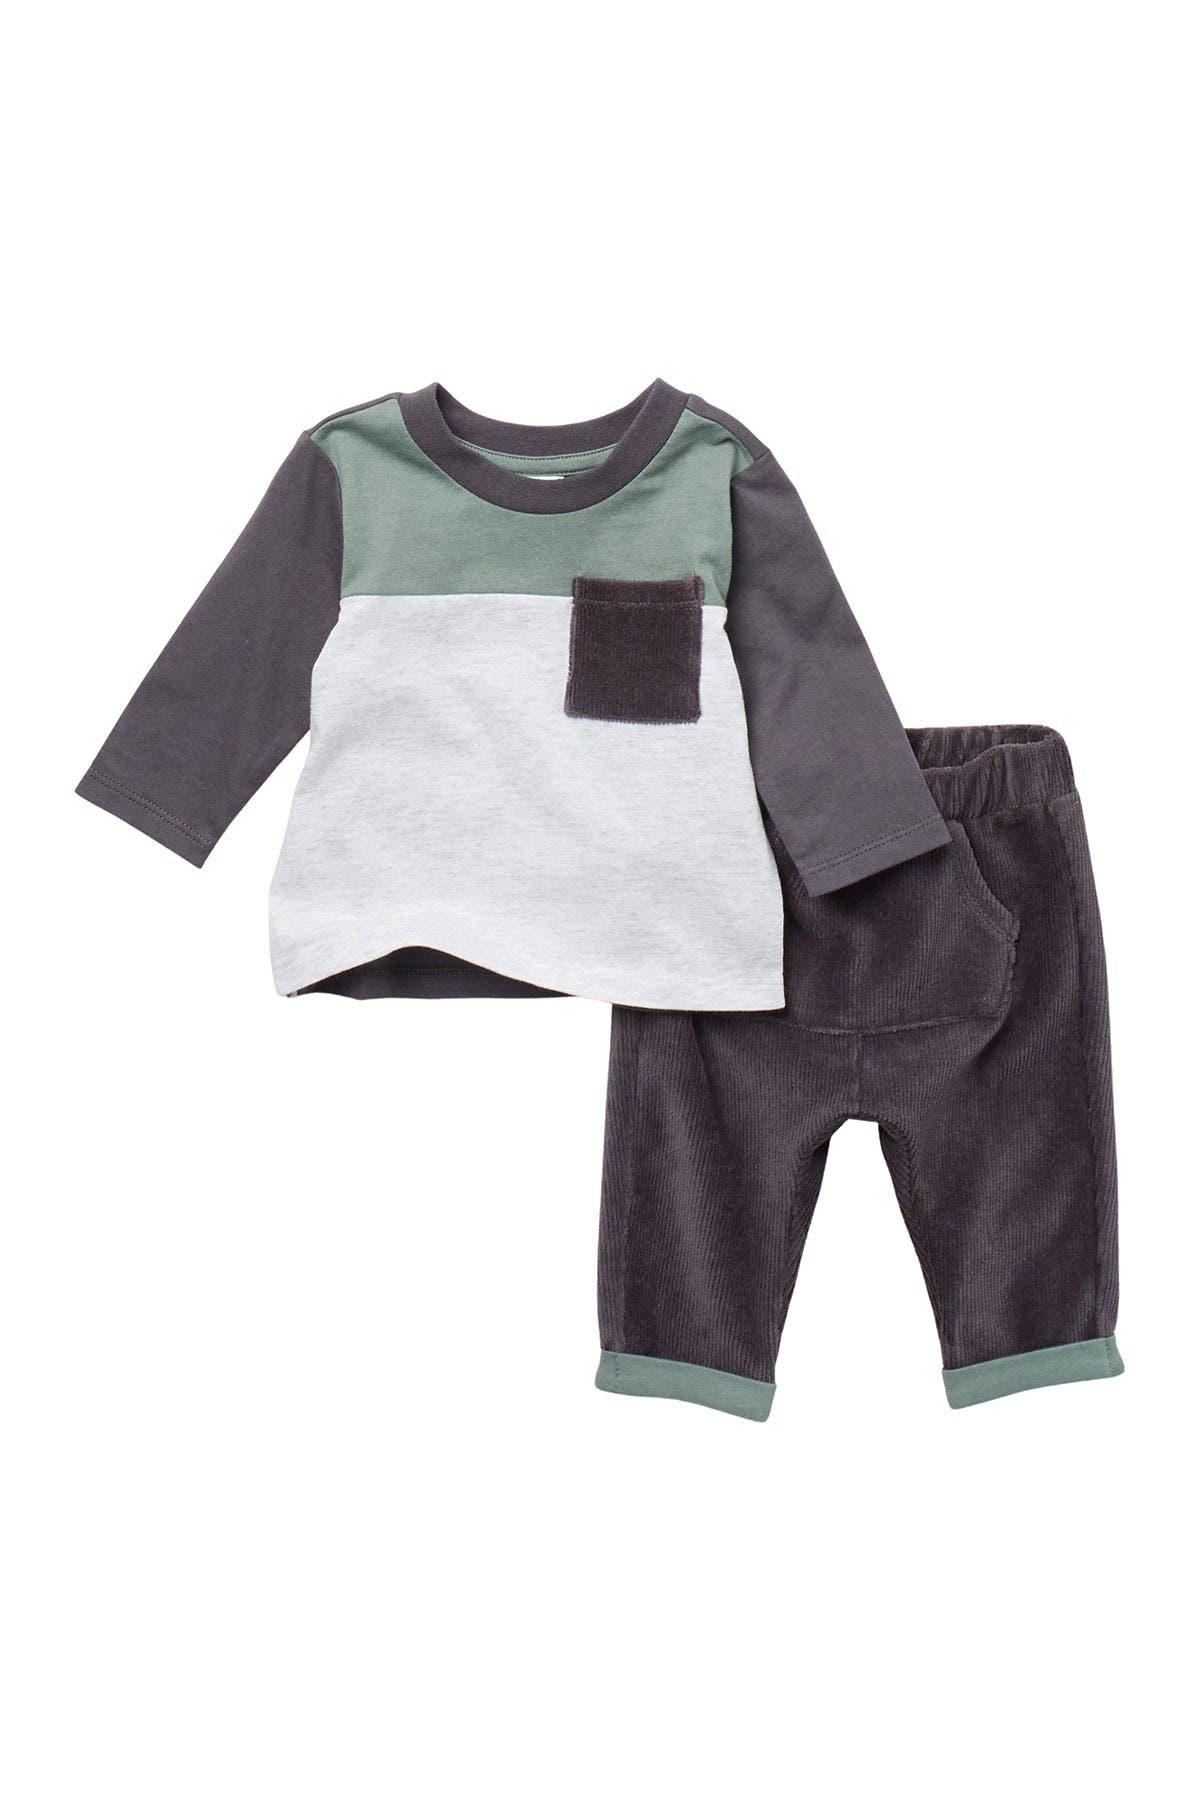 Edjude Baby Boys Clothing Sets Hoodie Top T-Shirt Long Sleeve Pants Sets Autumn Clothes 2 Piece Toddler Outfits 0-3 Years